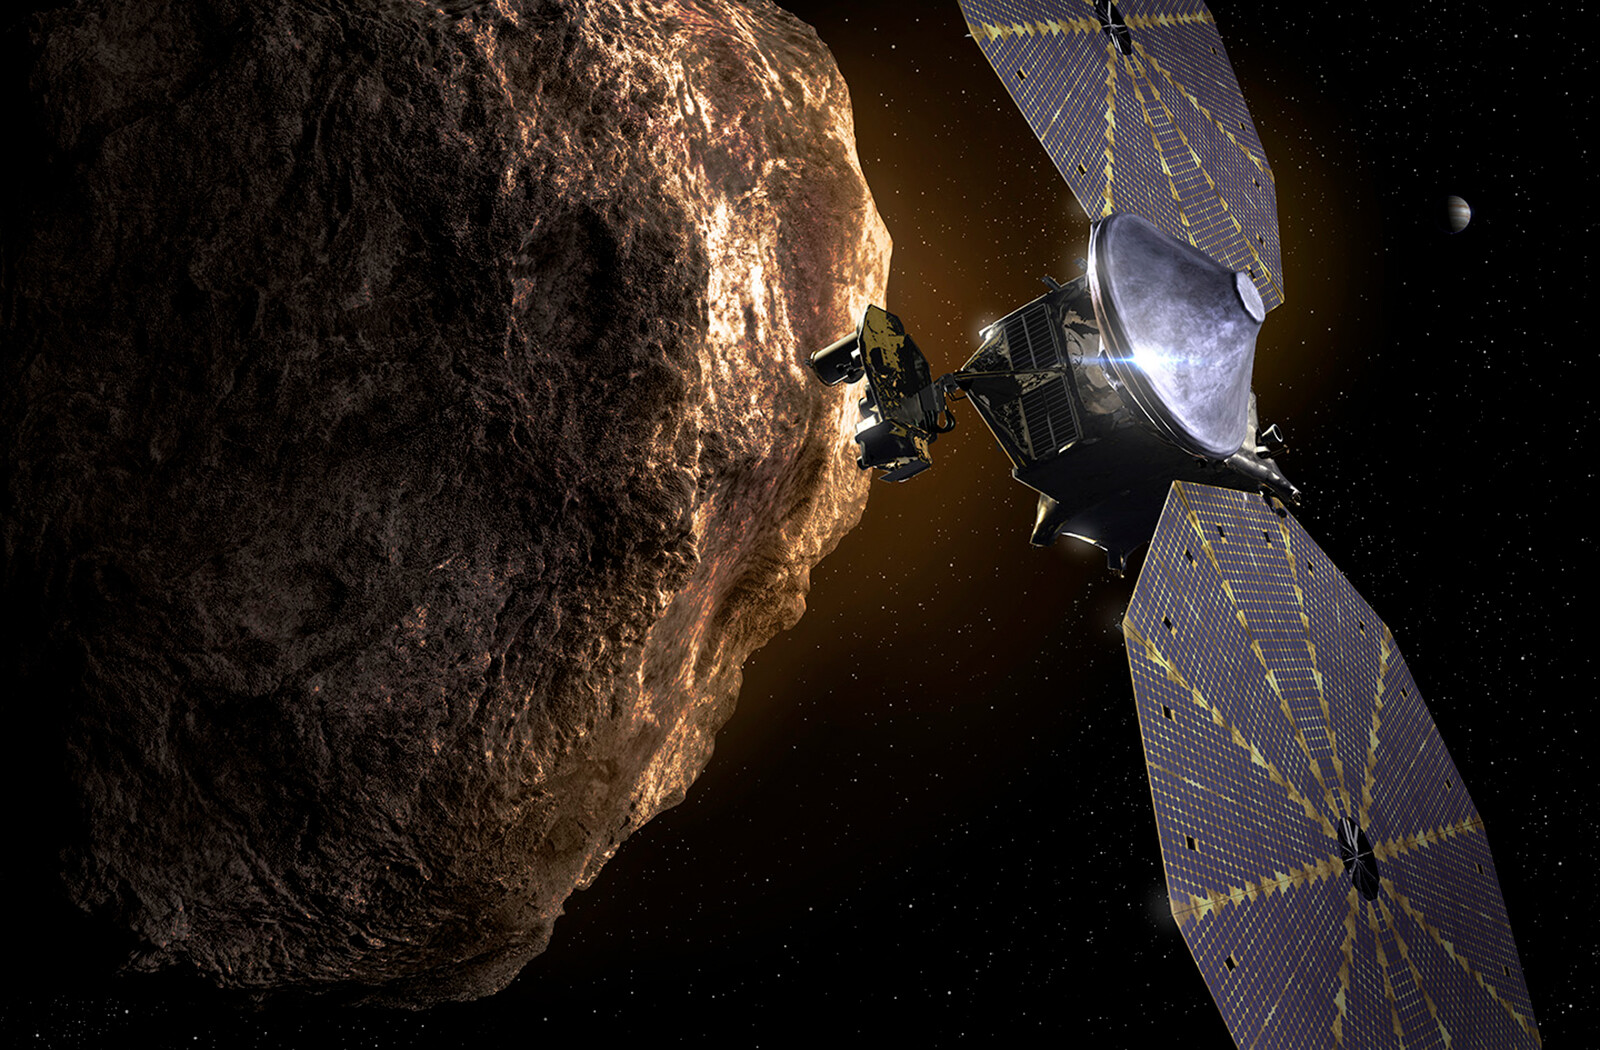 NASA's Lucy mission will observe the earliest 'fossils' of the solar system